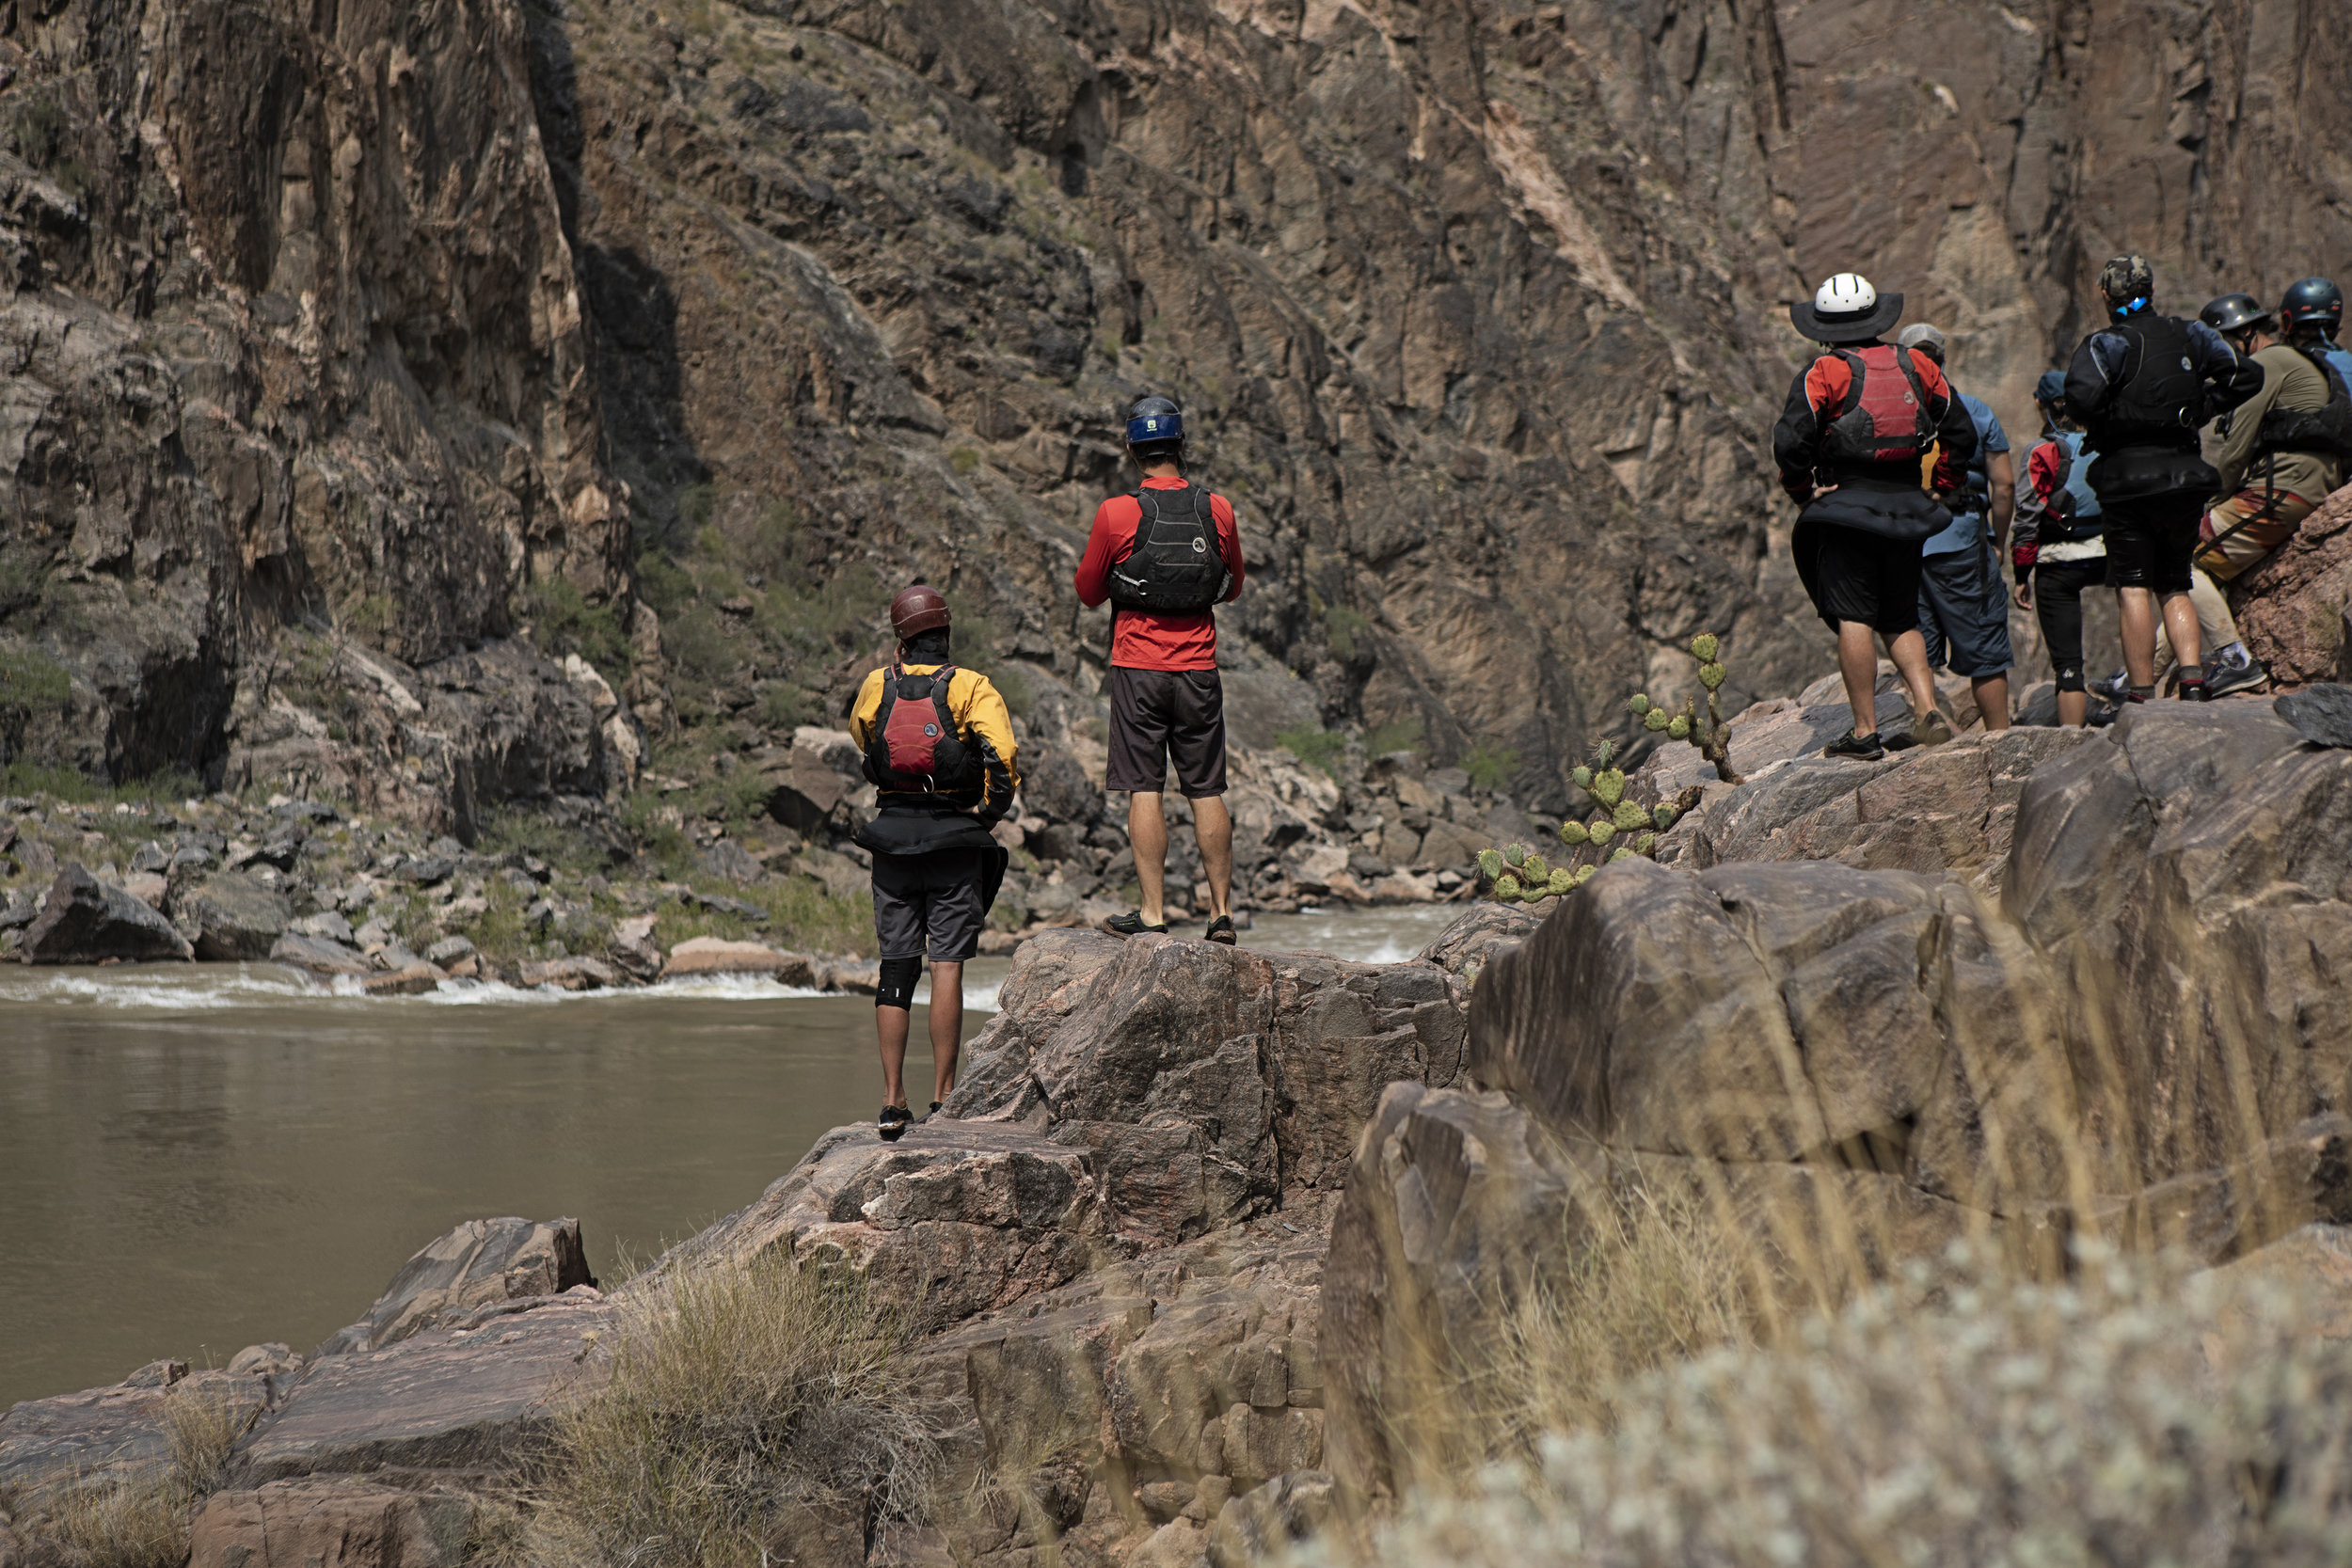 The Astral adorned crew, contemplating their lines through Horn Creek Rapid.